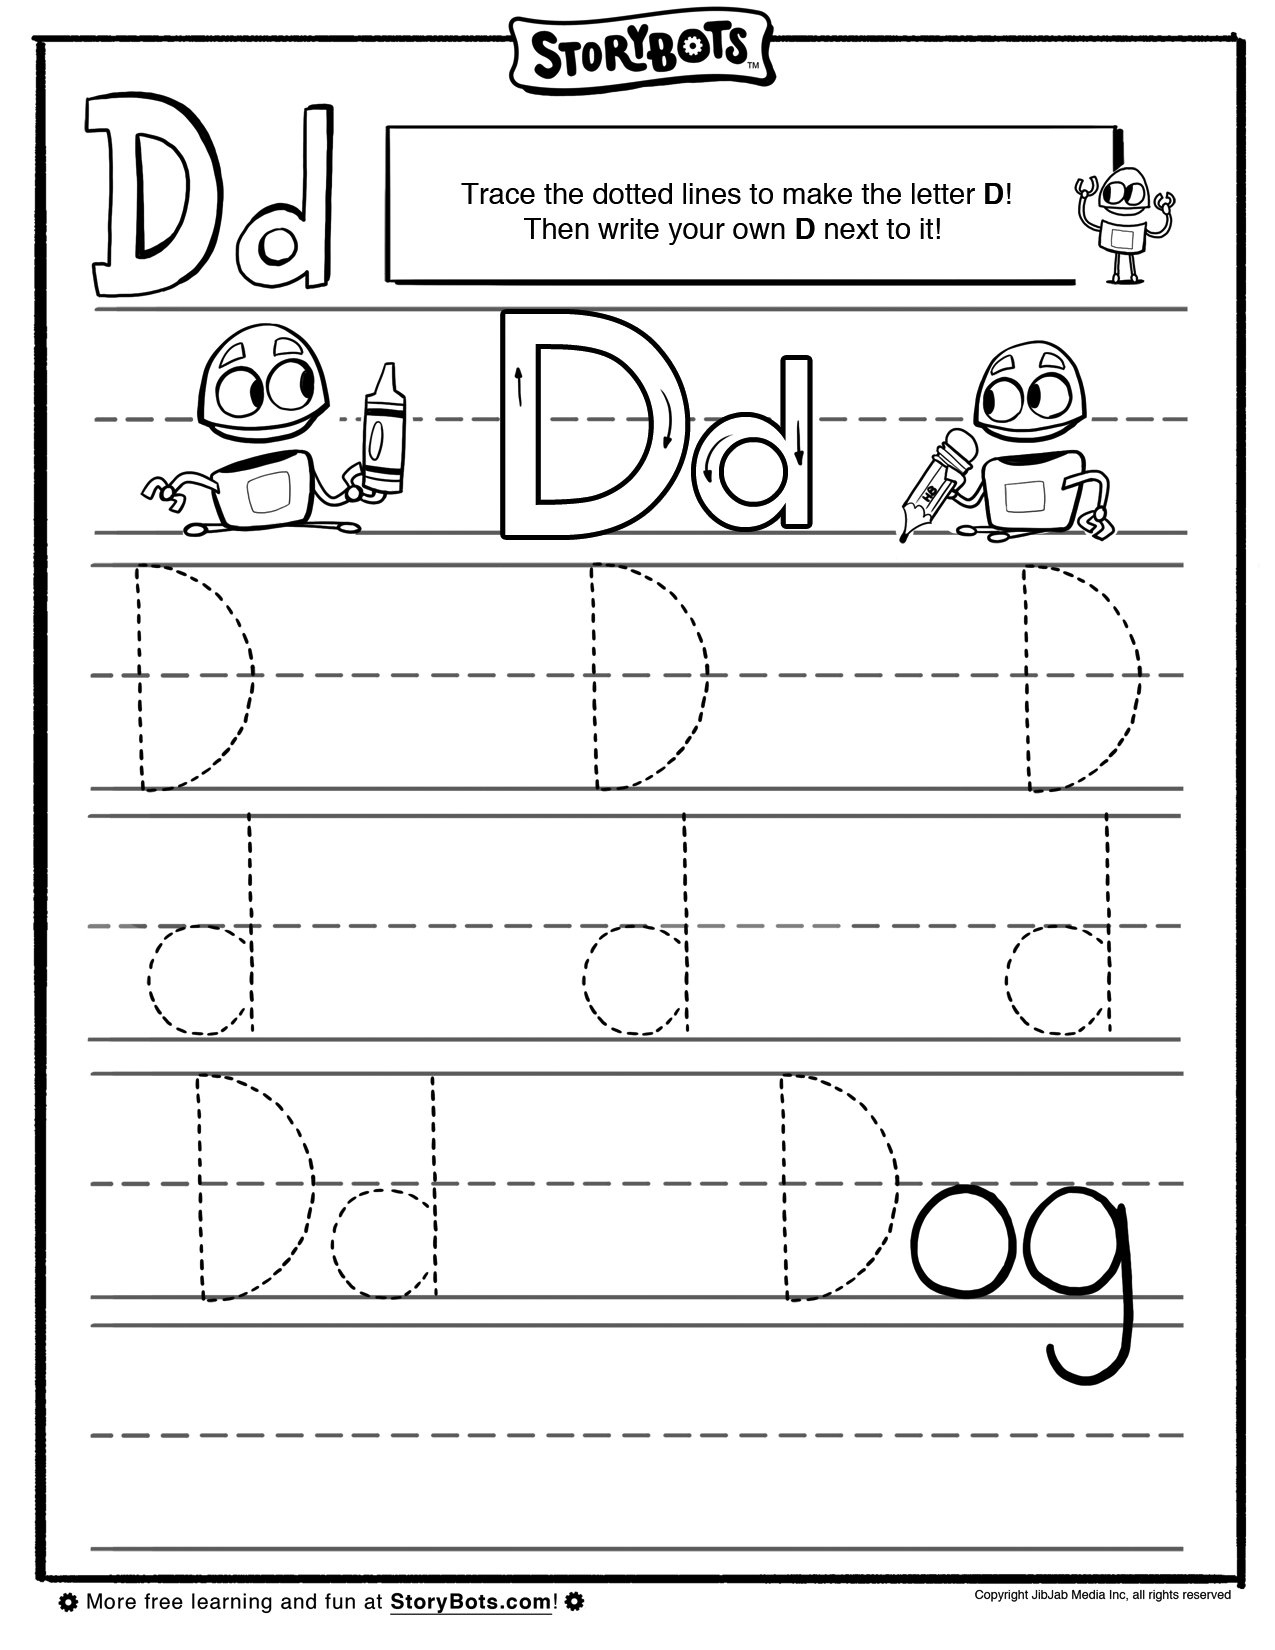 It's Easy To Draw A Letter D. Just Trace The Dotted Lines pertaining to Dotted Line Letters For Tracing